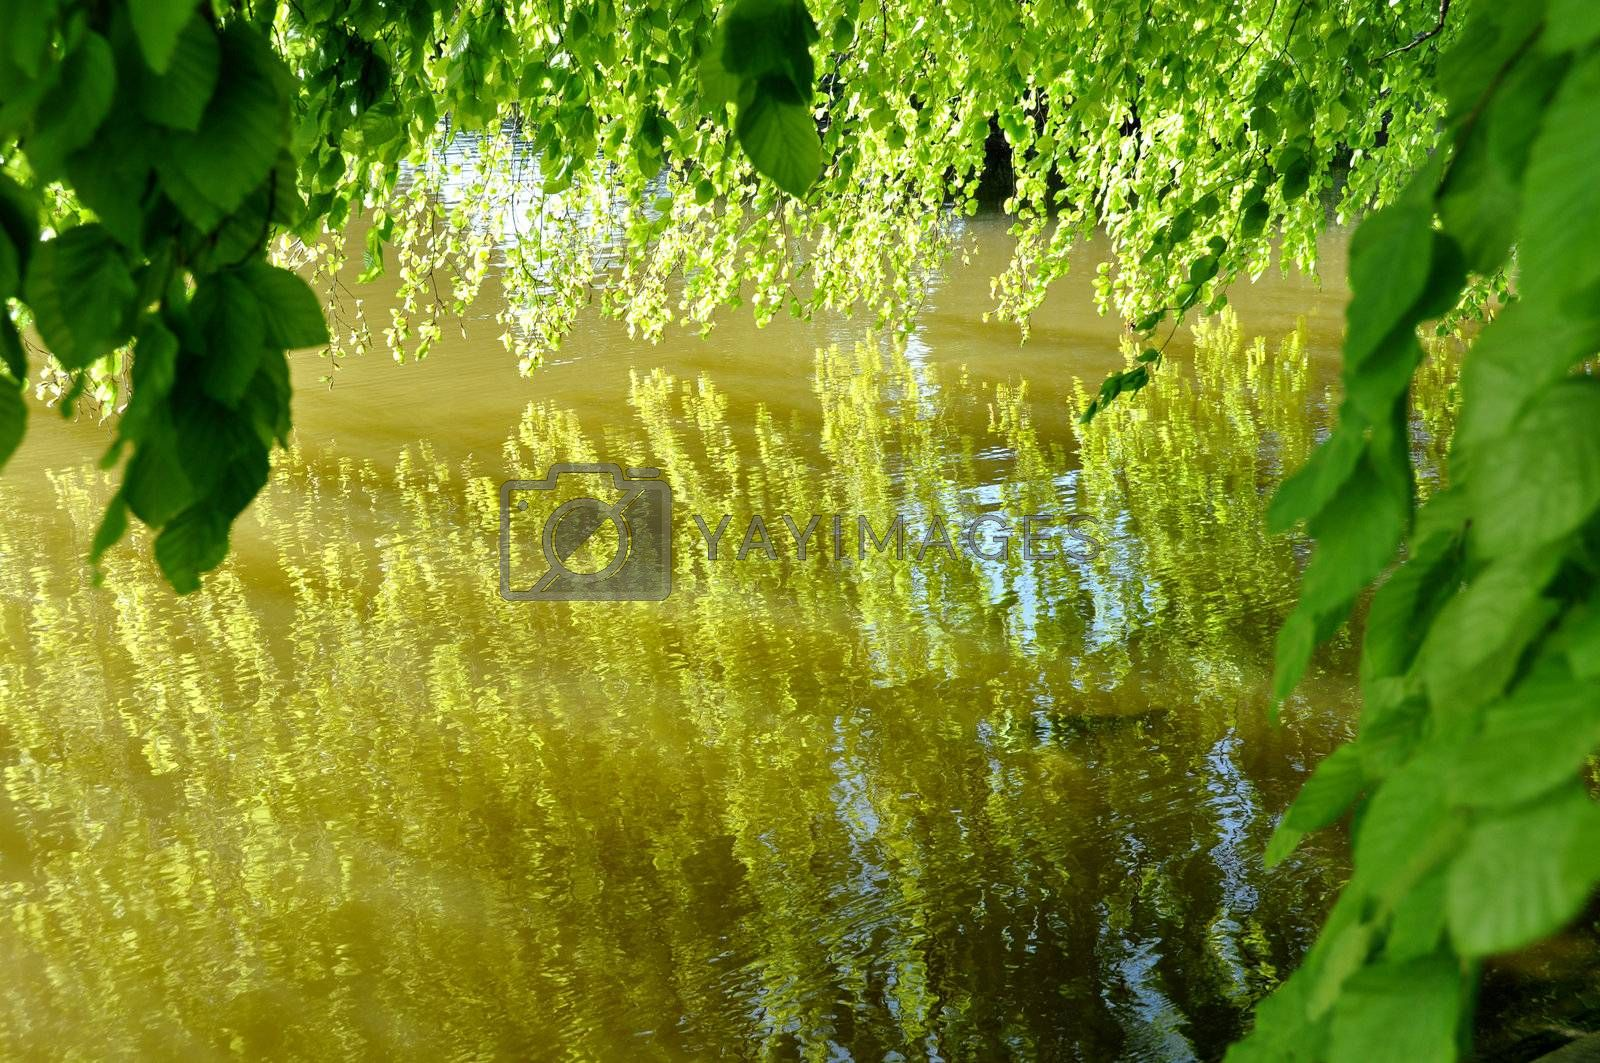 Tree leaves reflecting on a pond, spring season